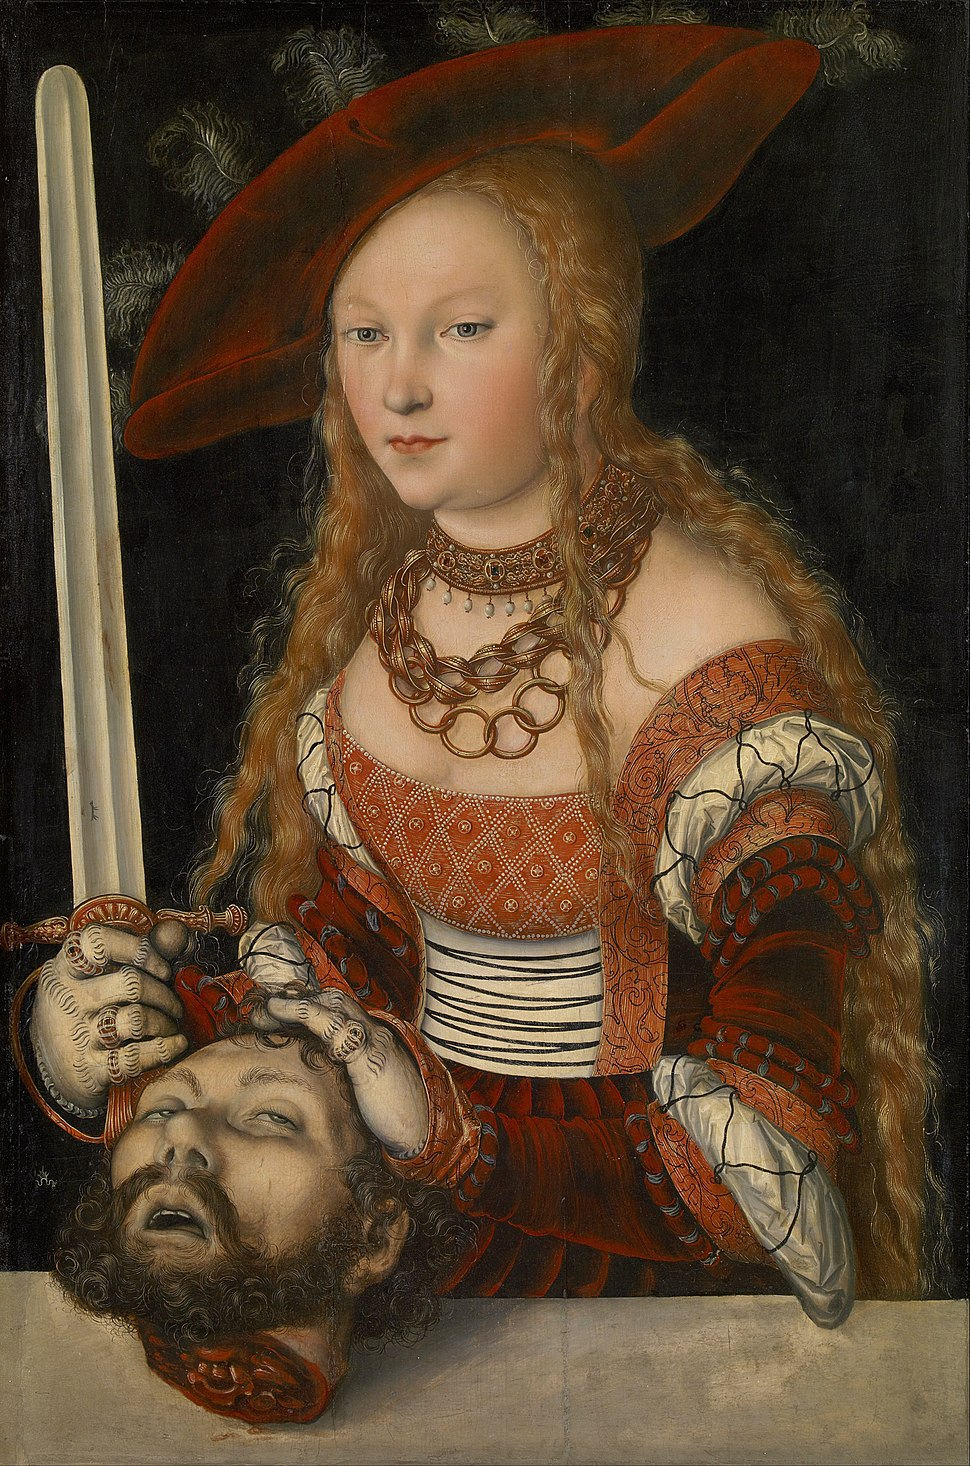 Lucas Cranach the Elder - Judith with the Head of Holofernes - Google Art Project